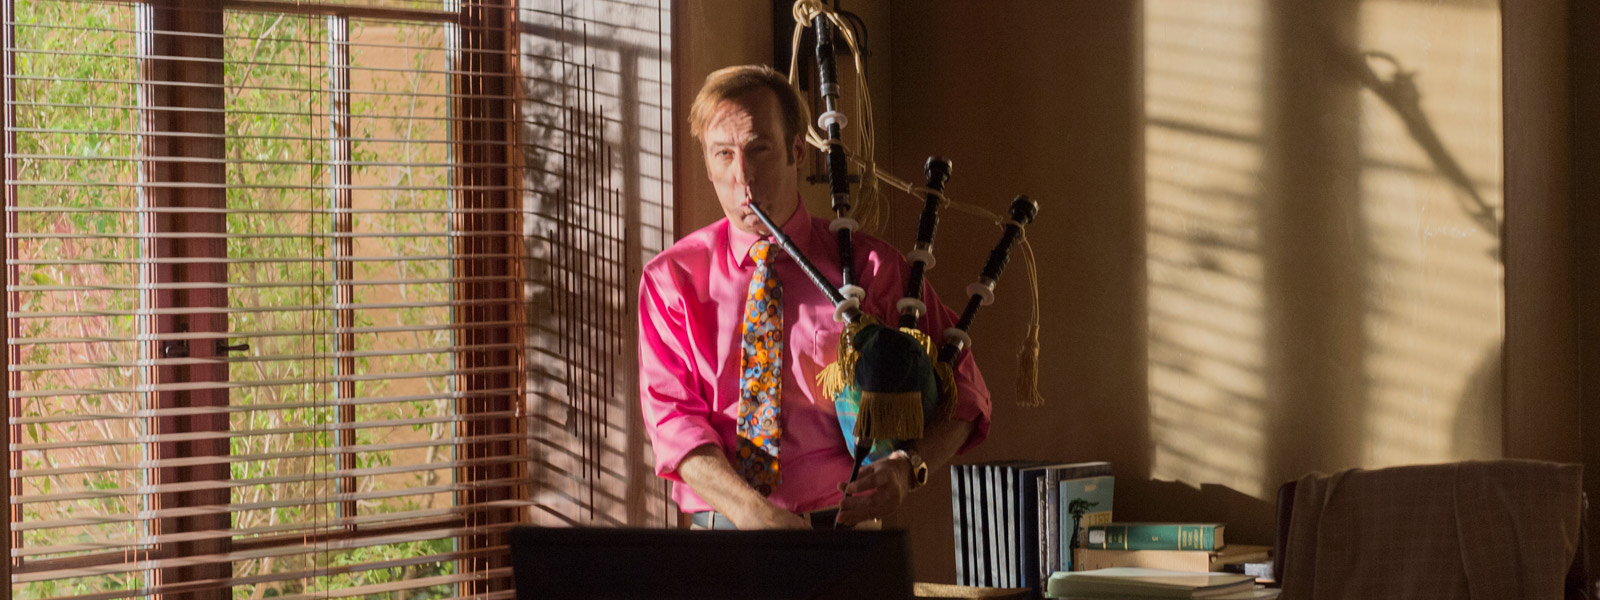 better-call-saul-episode-207-jimmy-odenkirk-post-800×600